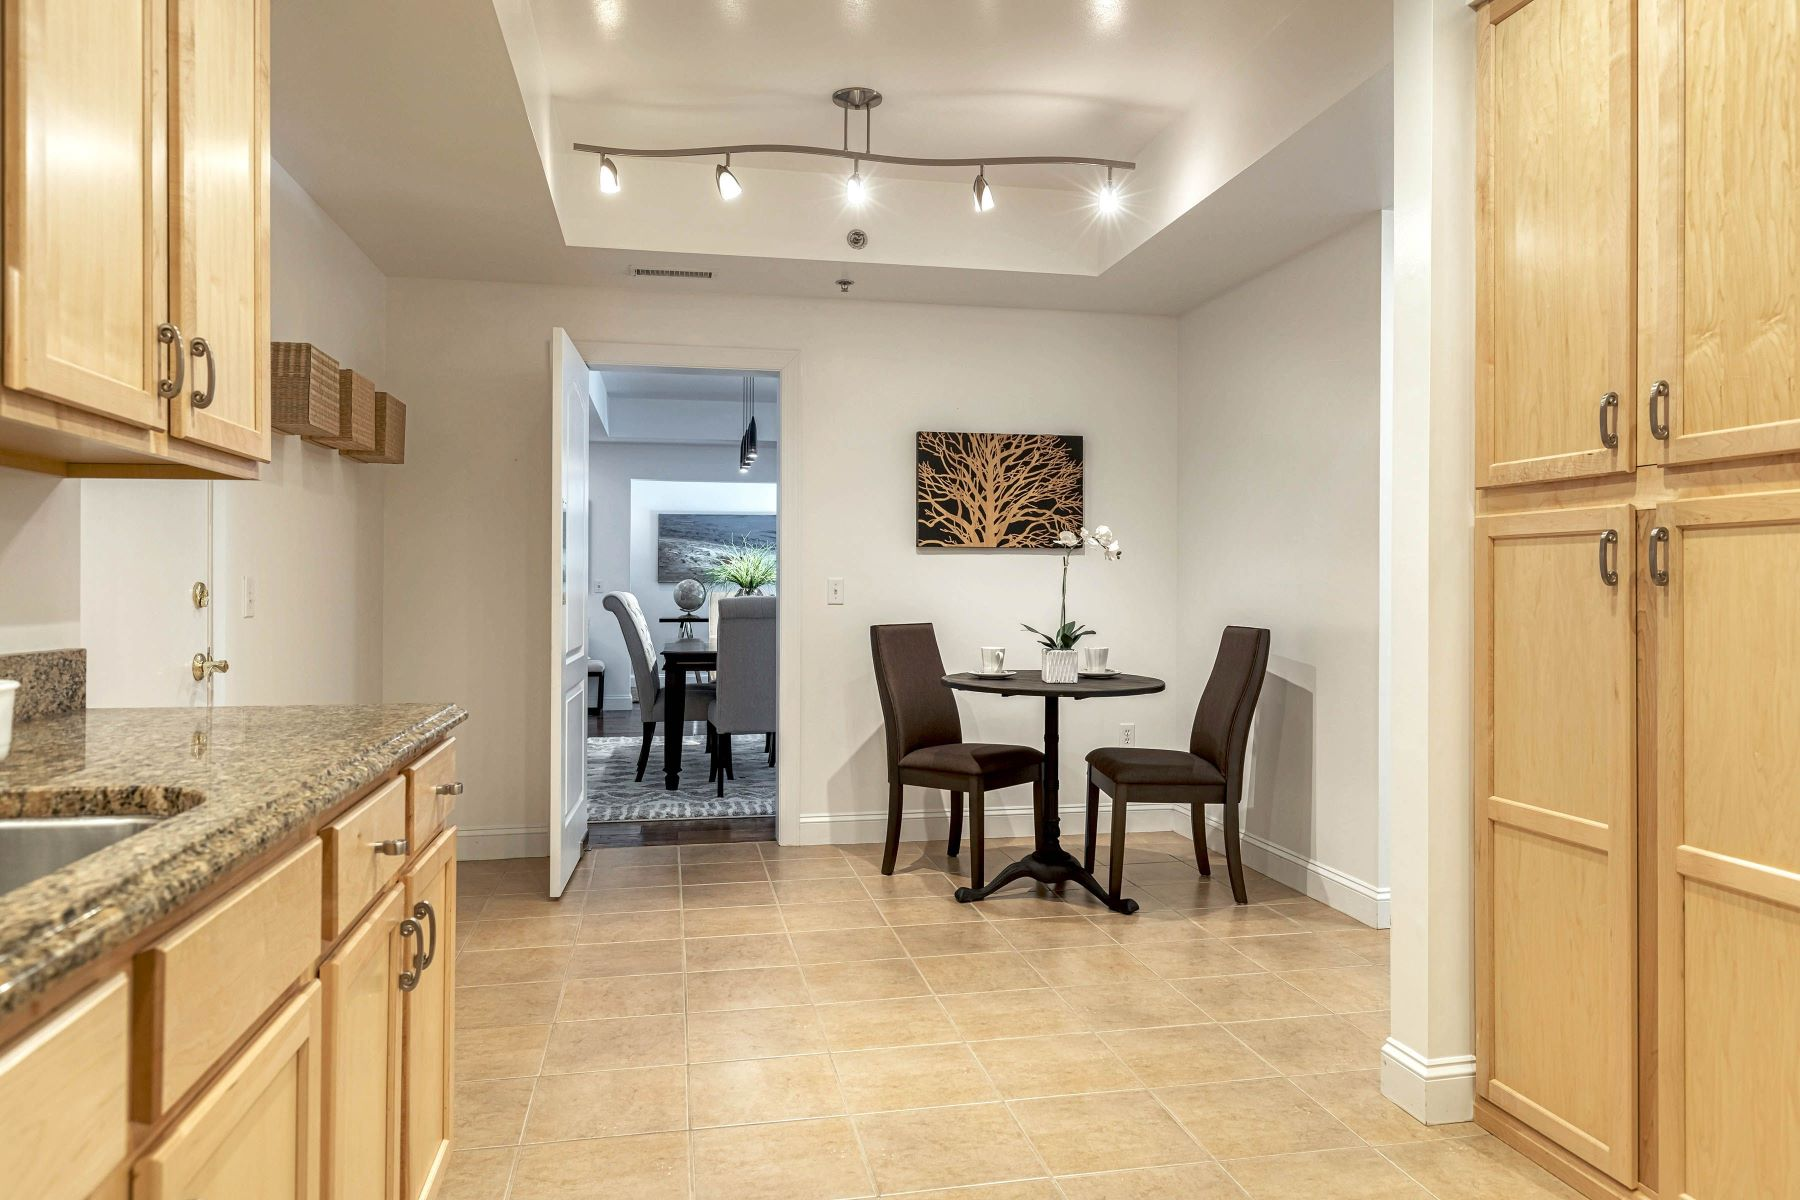 Additional photo for property listing at Popular Claymont Place Condominium 540 North and South Road, #104 University City, Missouri 63130 United States